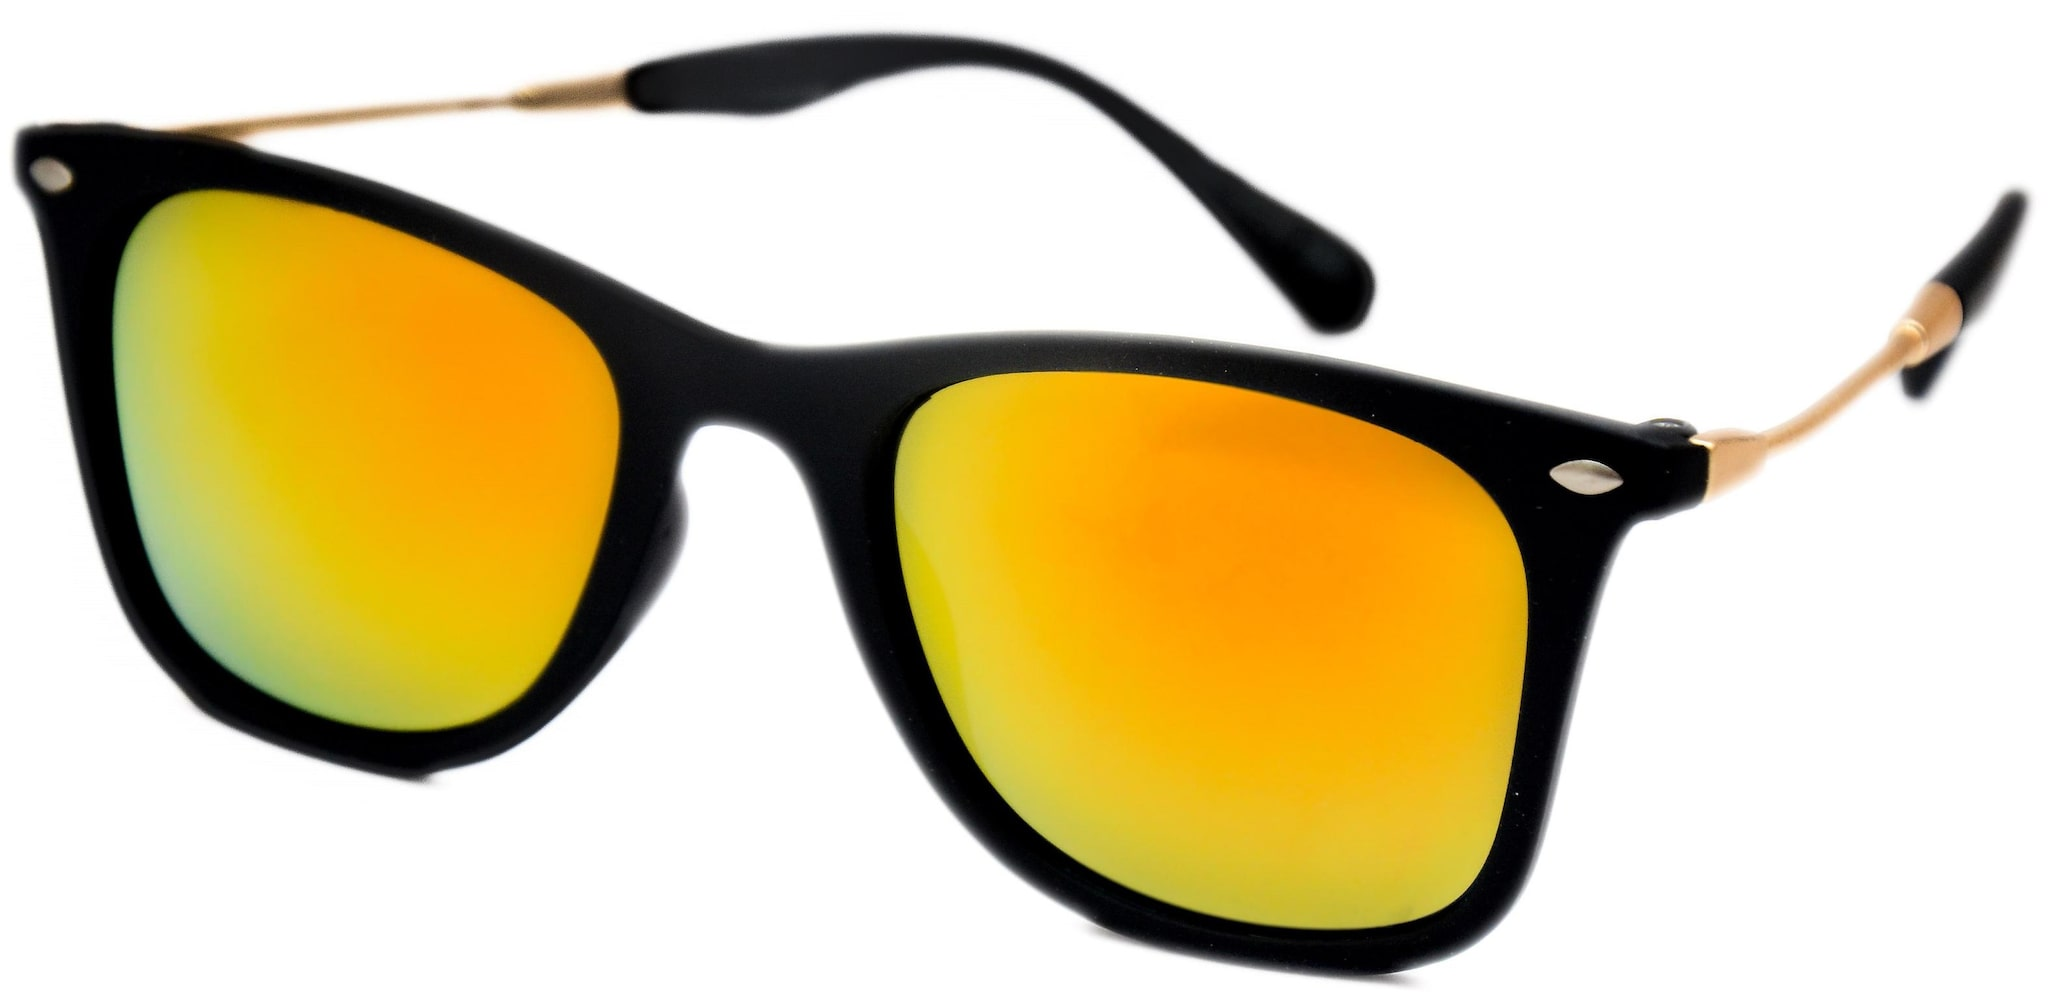 3d903934ea https   assetscdn1.paytm.com images catalog product . Thewhoop Orange  Wayfarer Medium Sunglasses